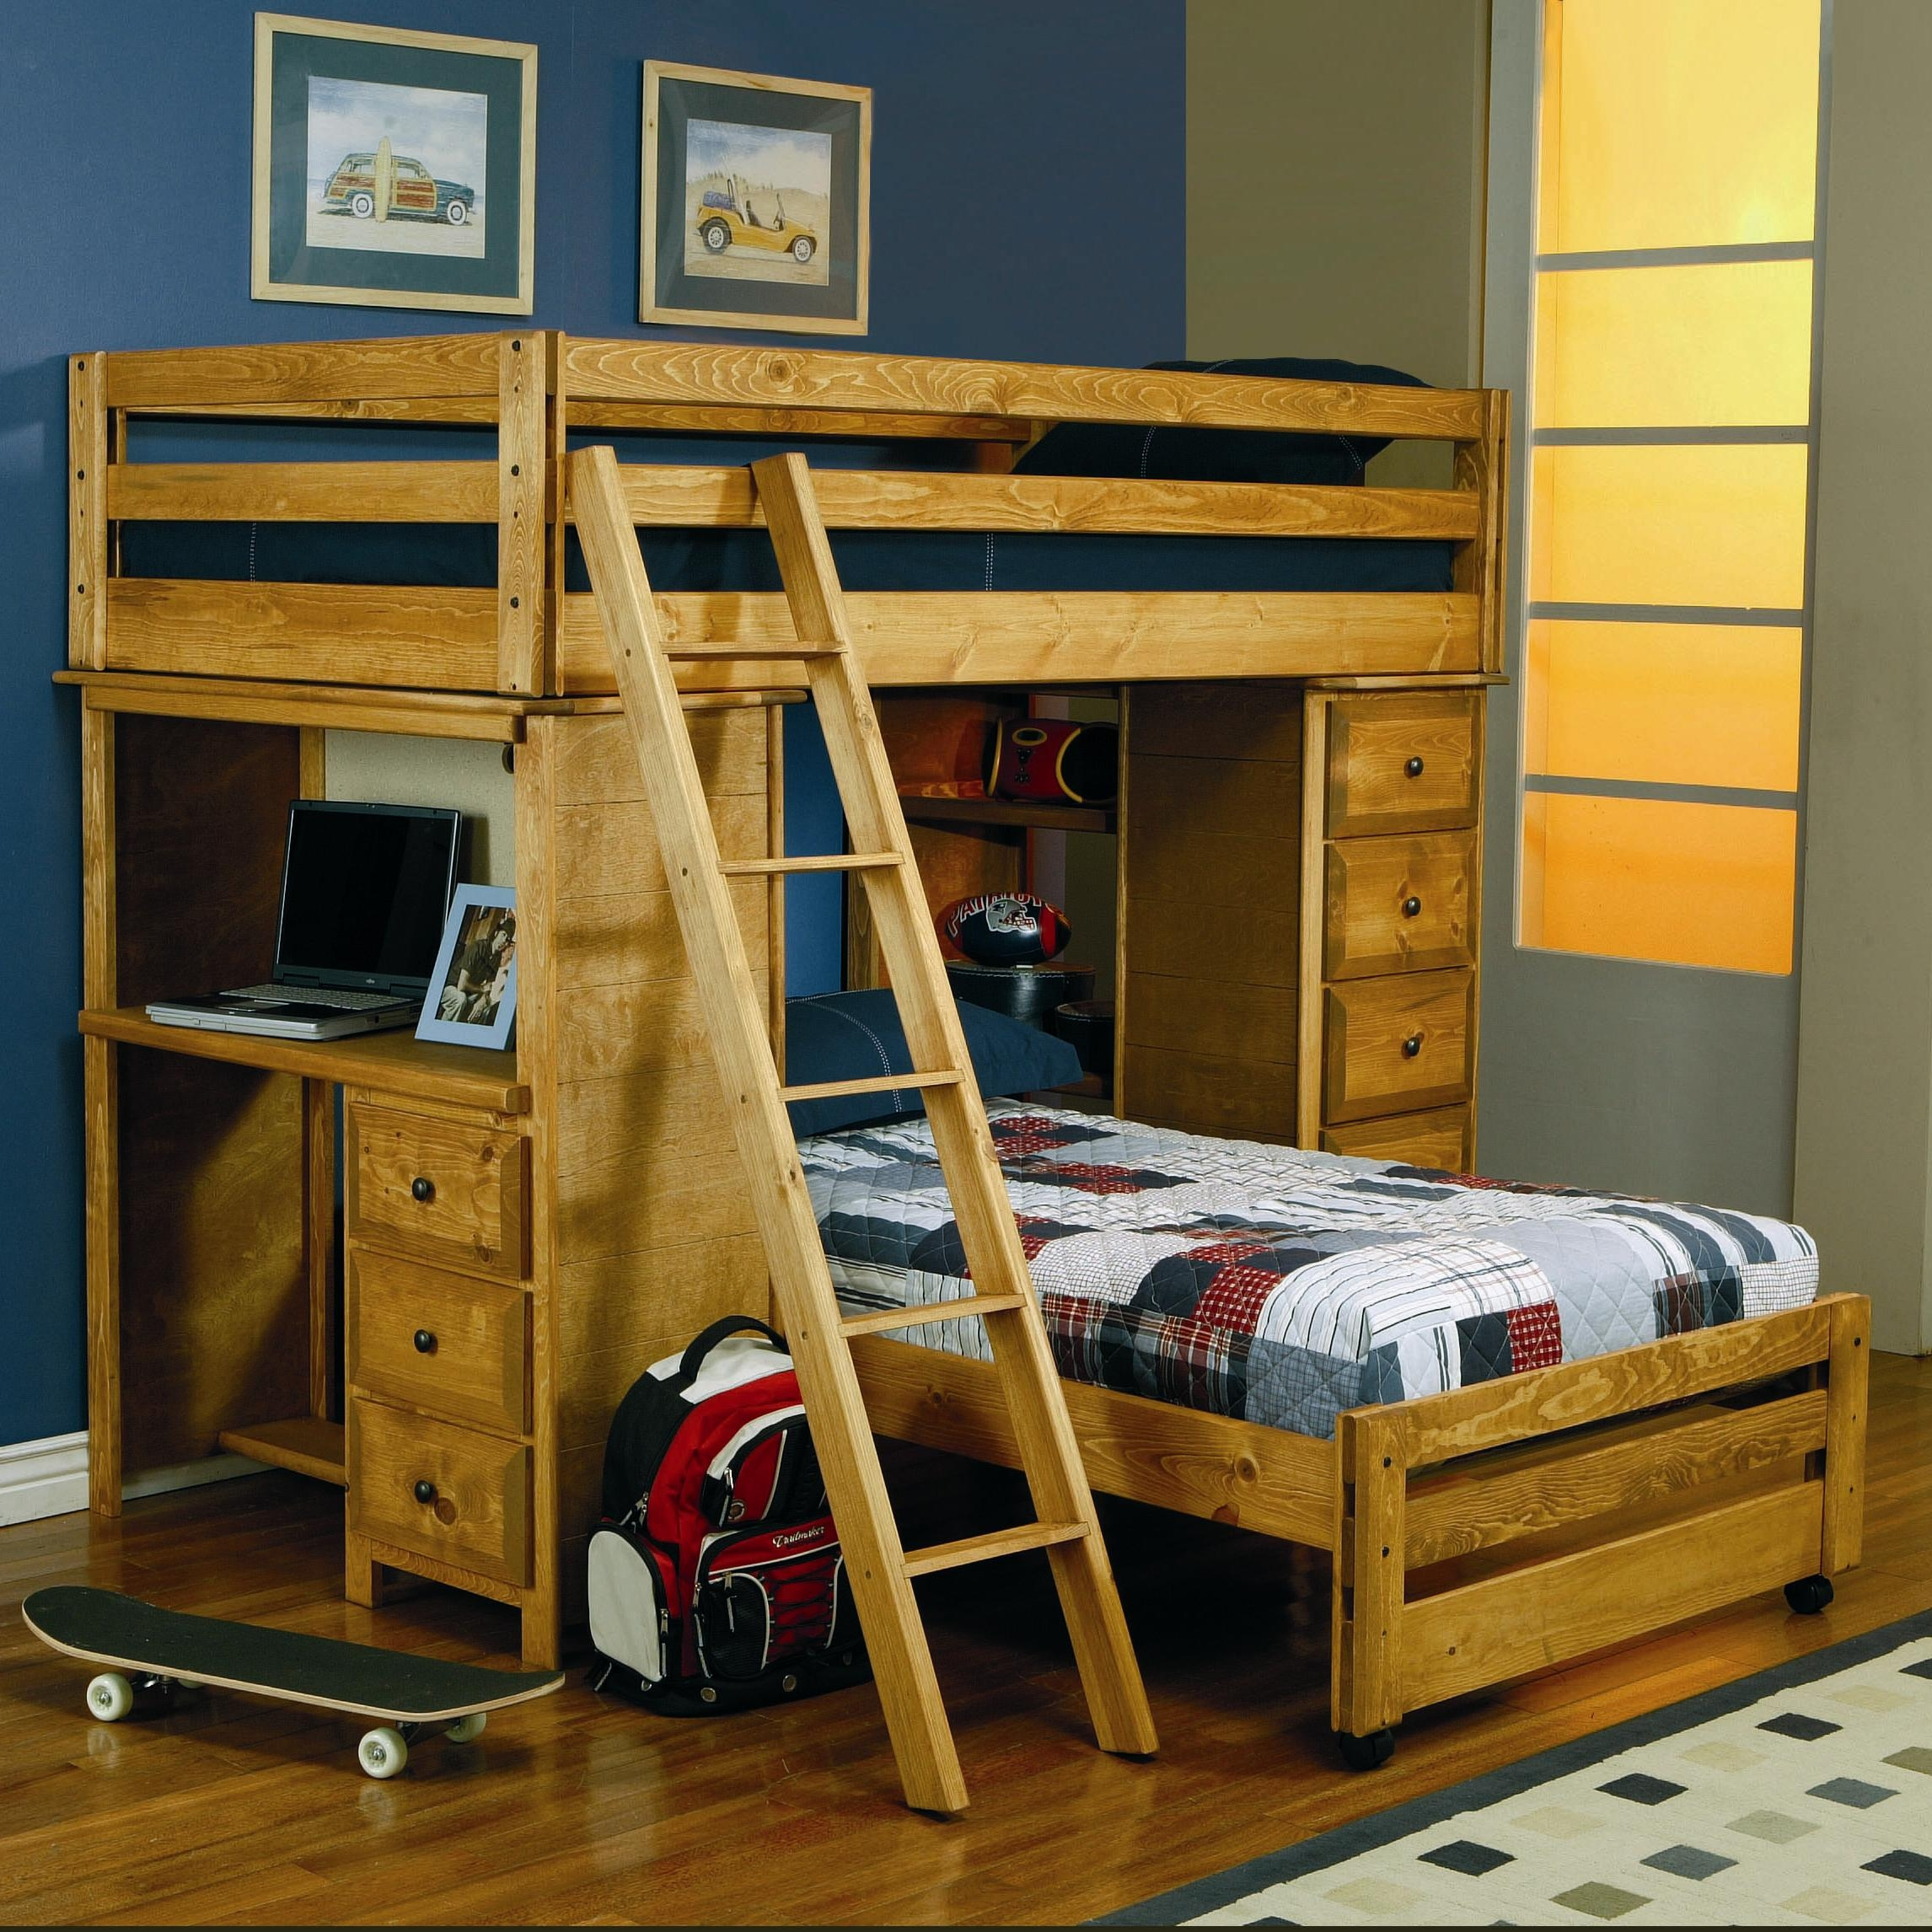 Youth Bunk Bed Wood With Desk And Drawers Tv Cabinet And 6 Drawers Dresser